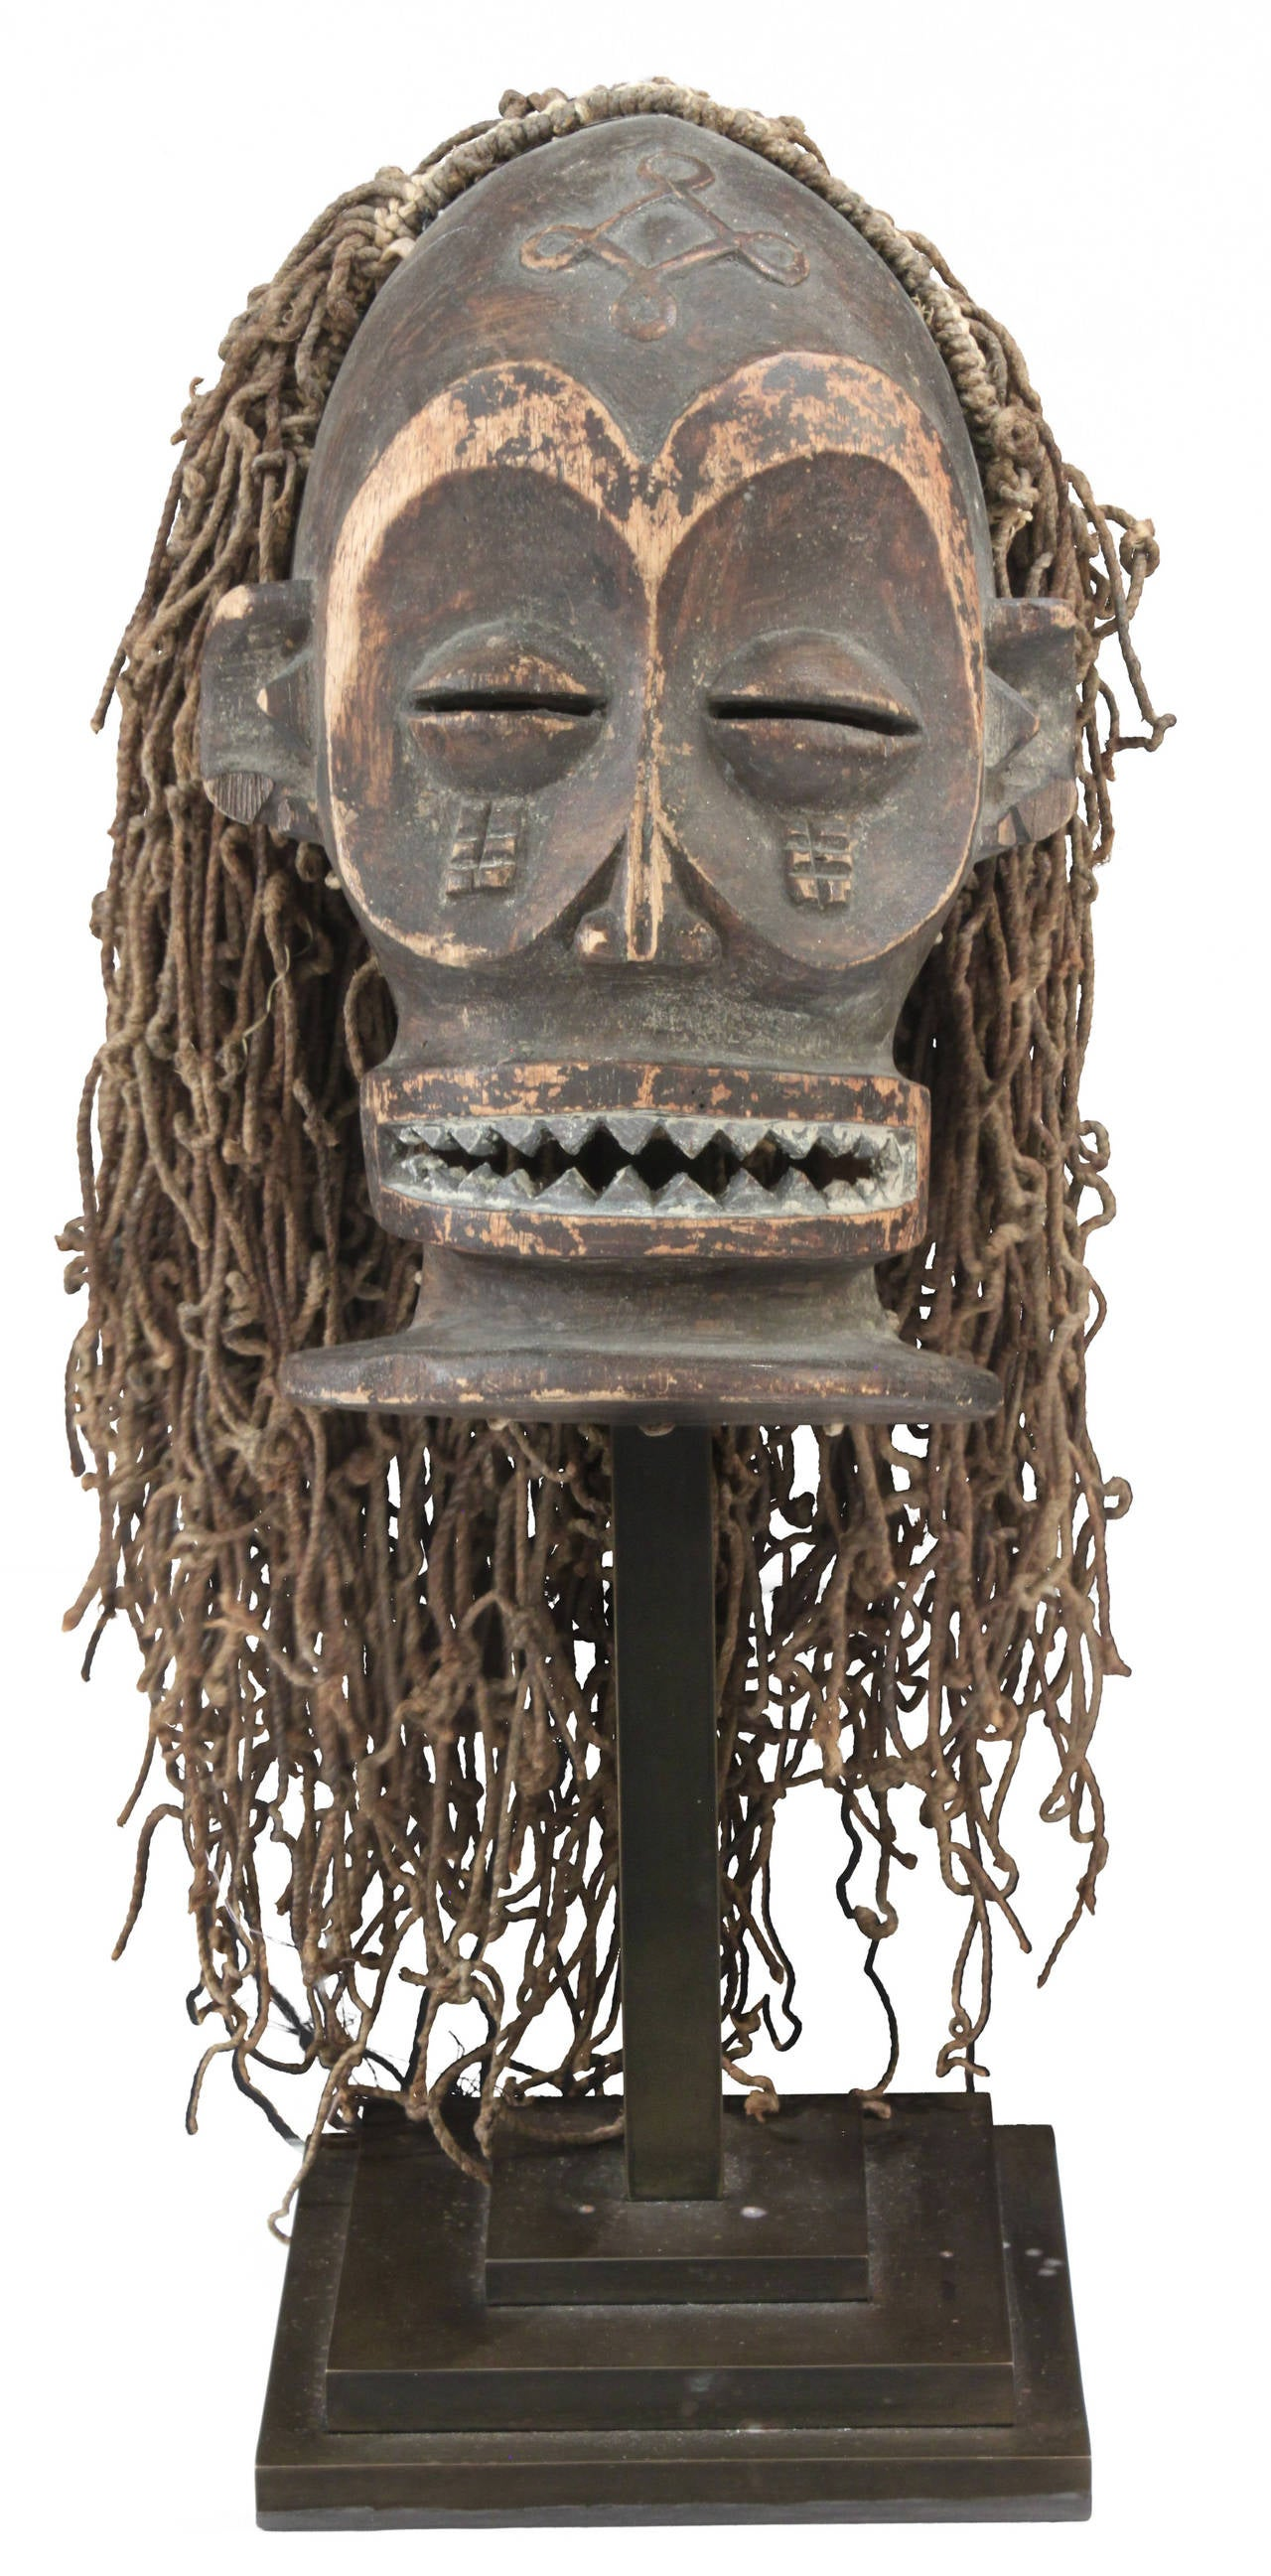 Hand-carved African male mask in the style of the Chokwe tribe of Angola on a bronze base by Karl Springer, American, 1980s (photo of original label included). Karl Springer had a scout who traveled the world seeking out exceptional handcrafted